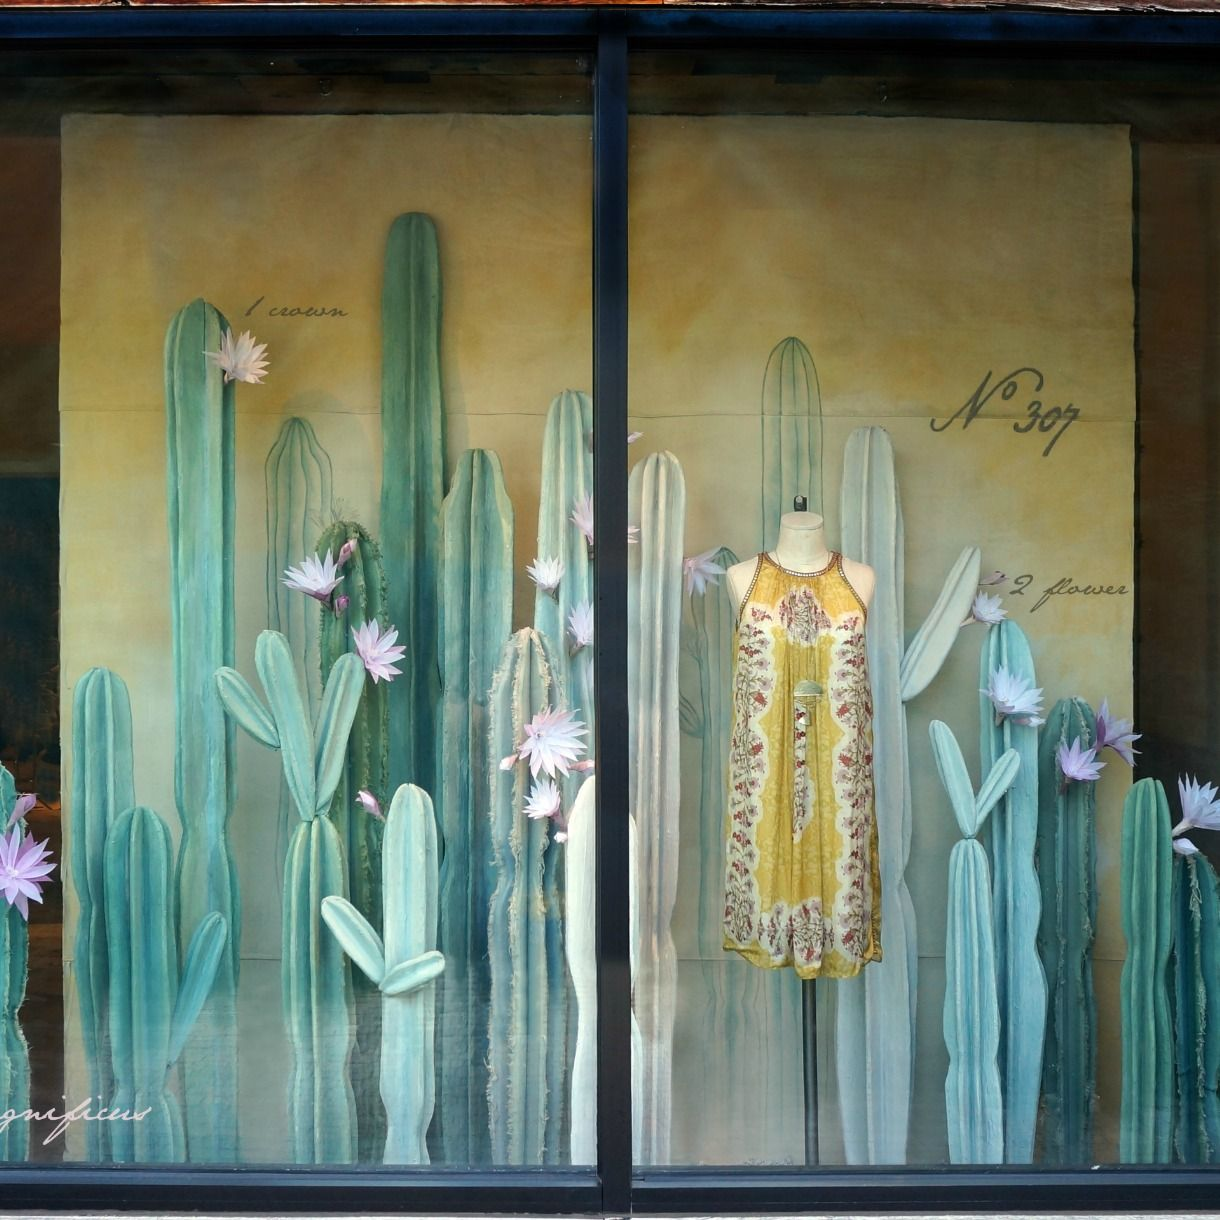 Anthropologie Tips And Advice Window Display Design Spring Window Display Anthropologie Window Display